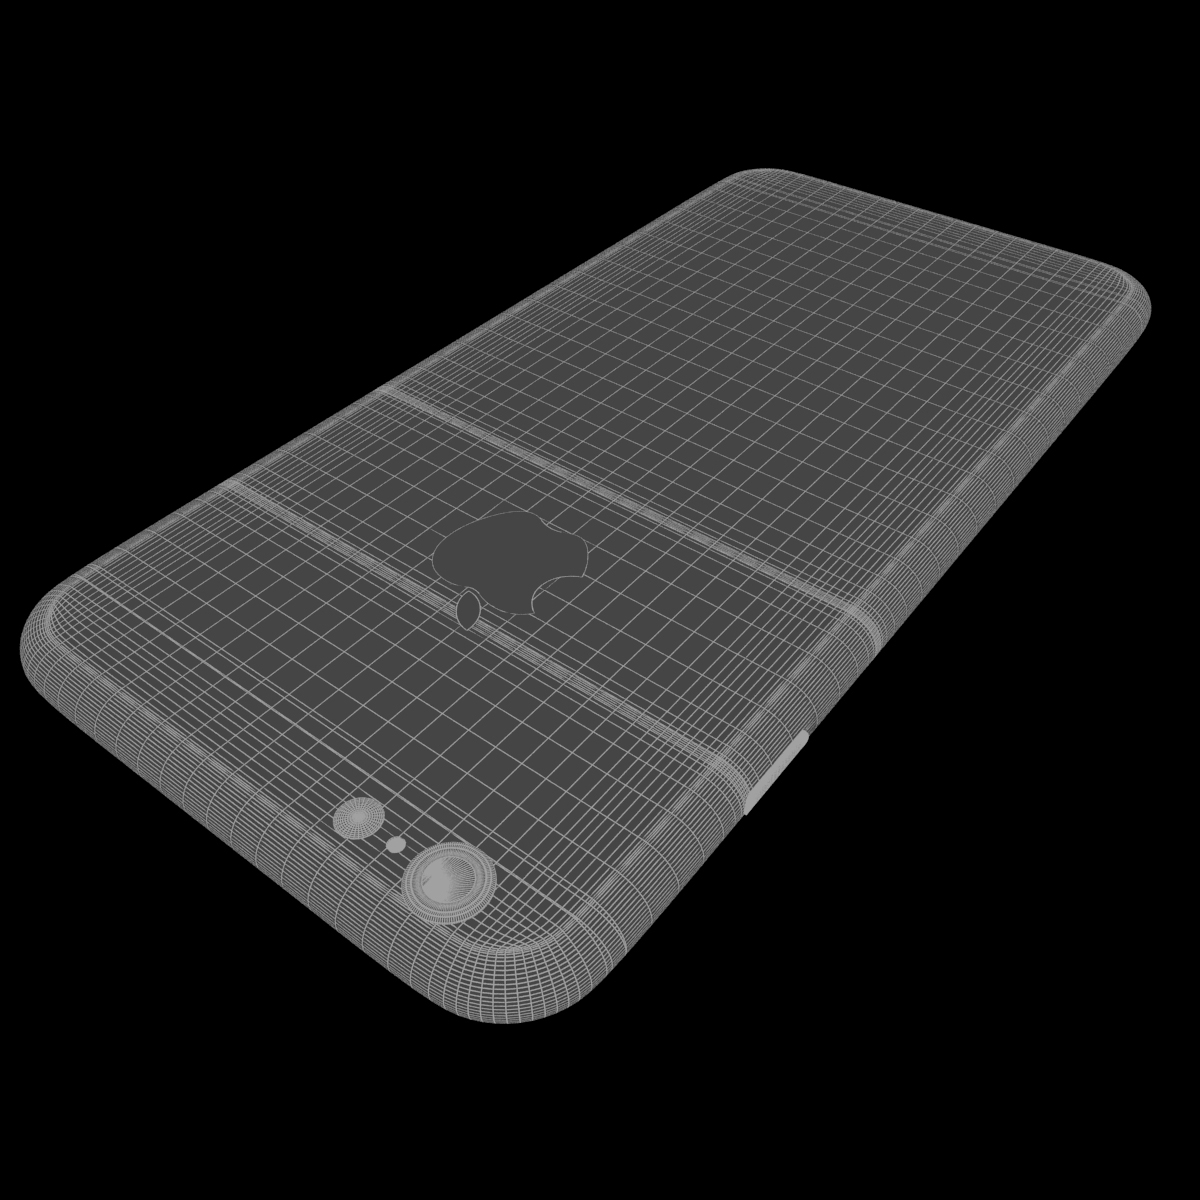 apple iphone 6s 3d model max fbx ma mb texture obj 278463